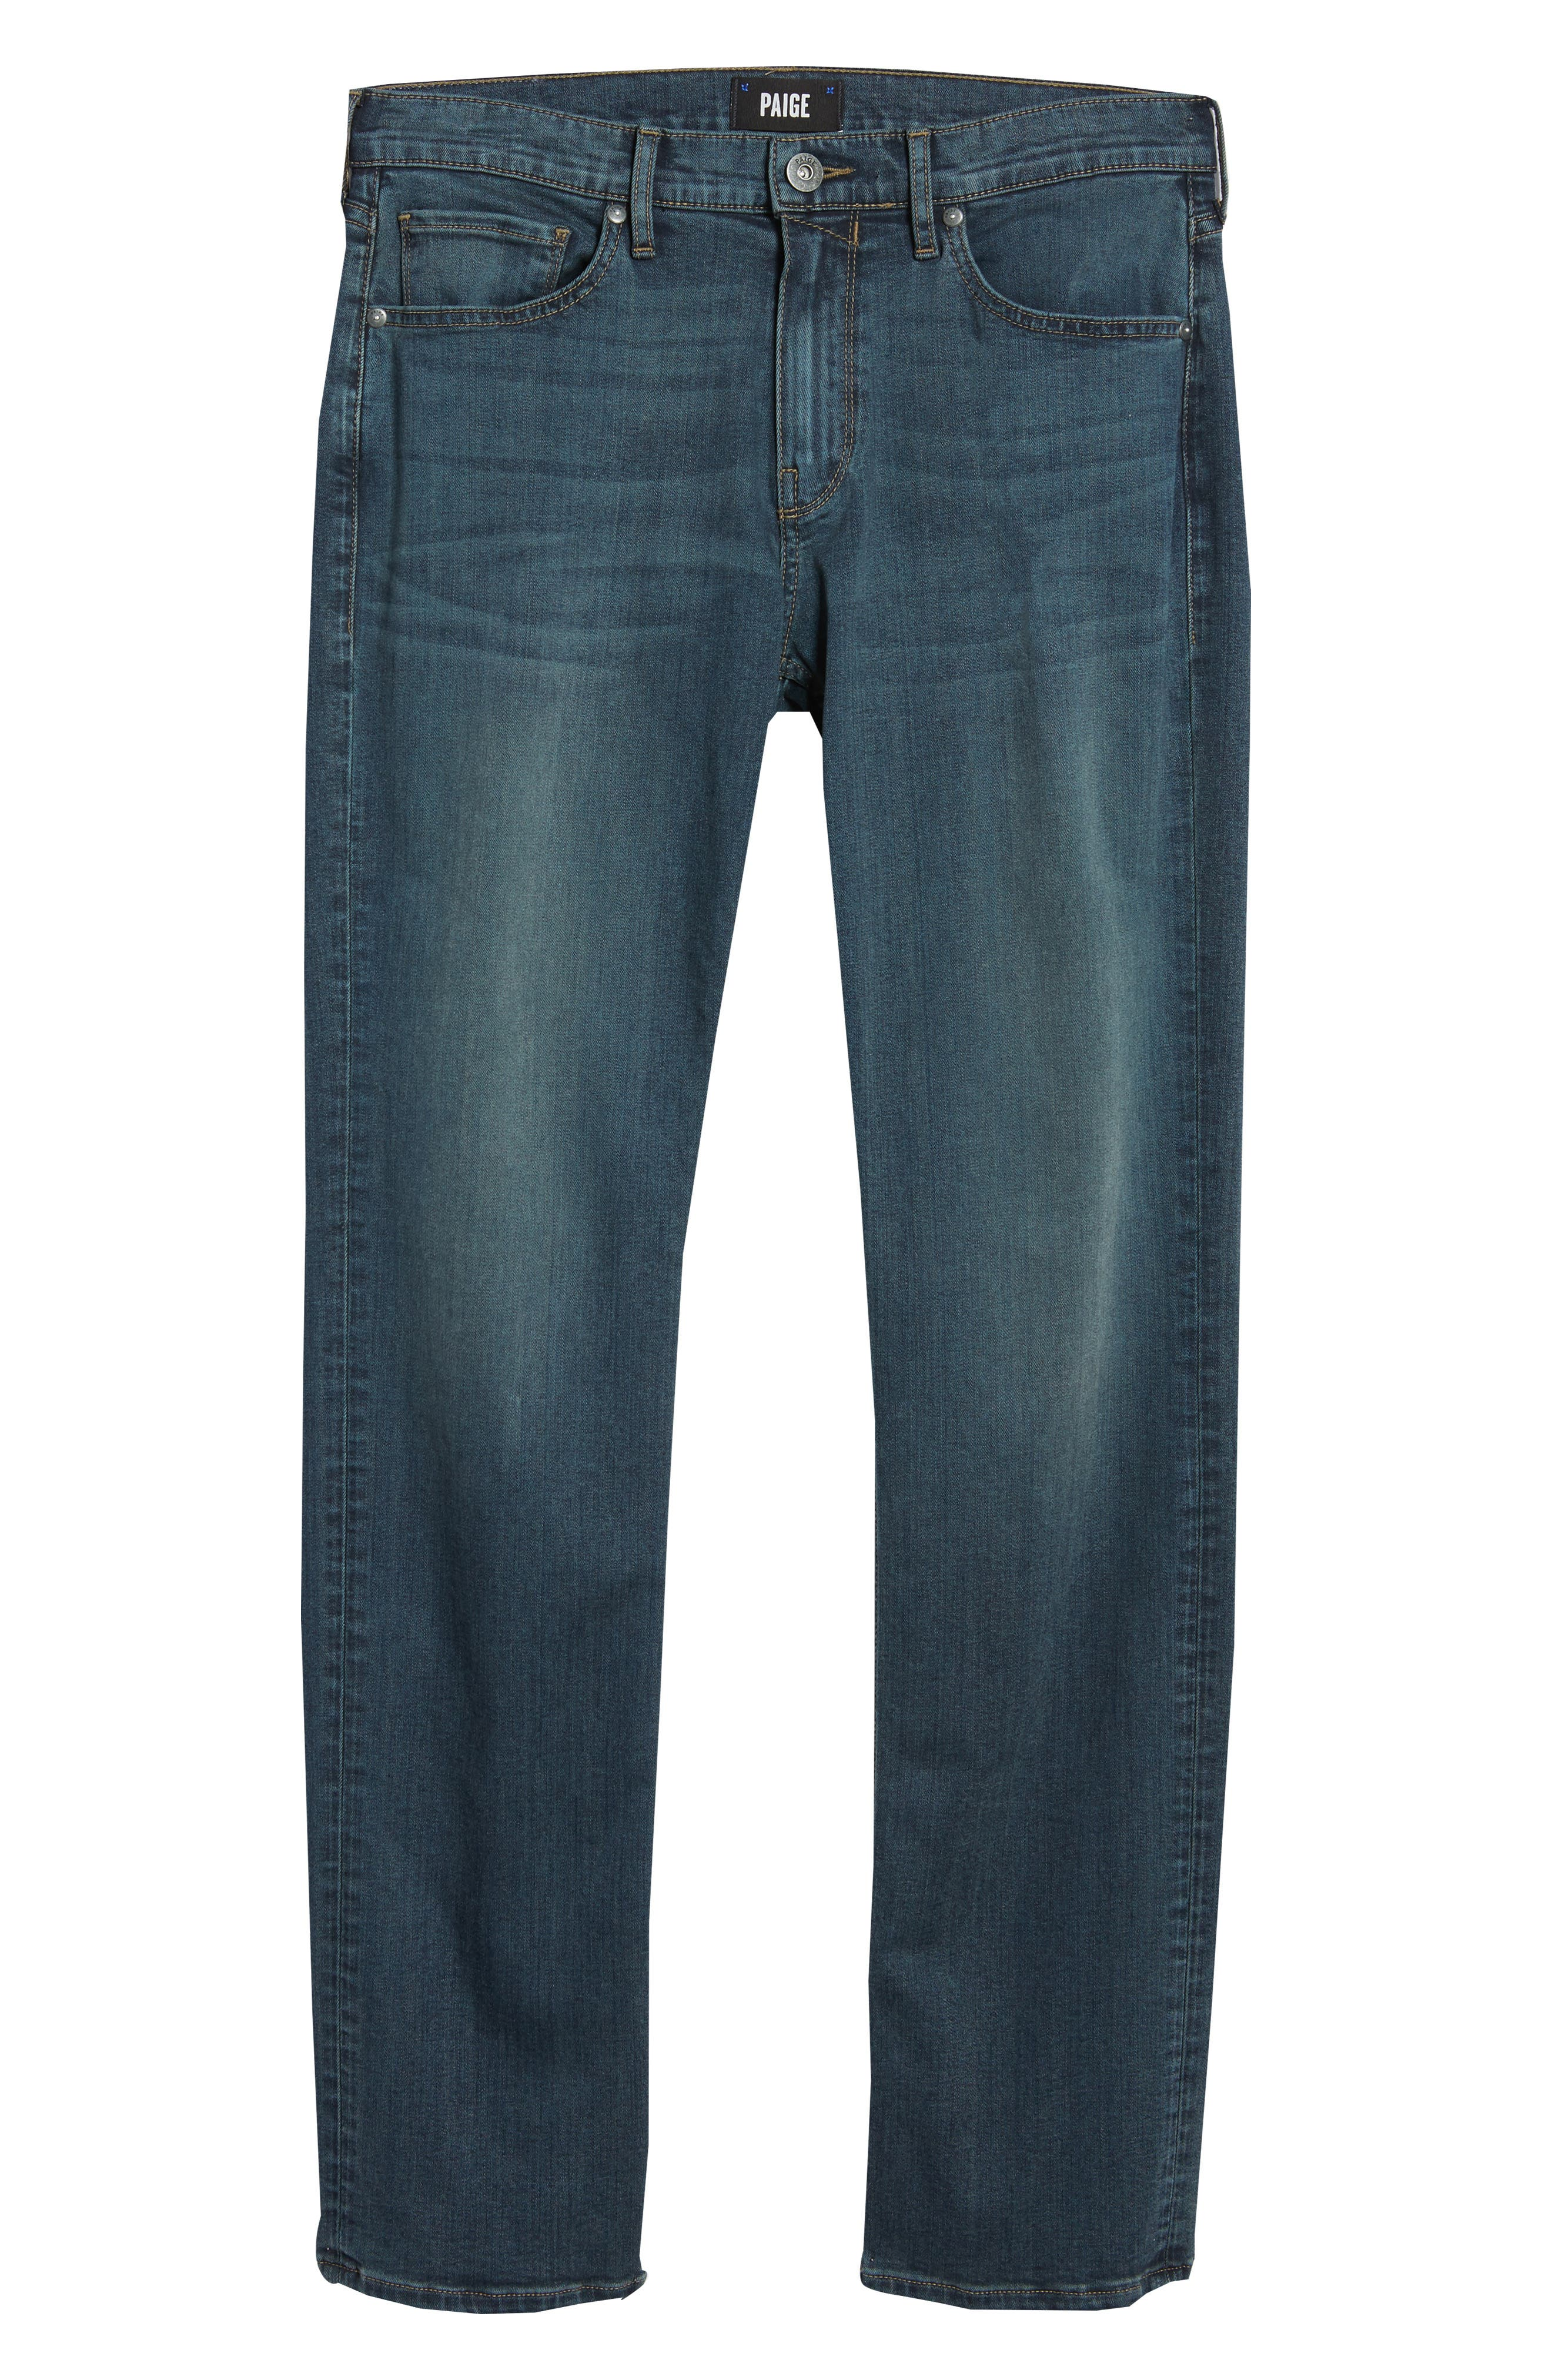 Byron Slim Straight Fit Jeans,                             Alternate thumbnail 6, color,                             424